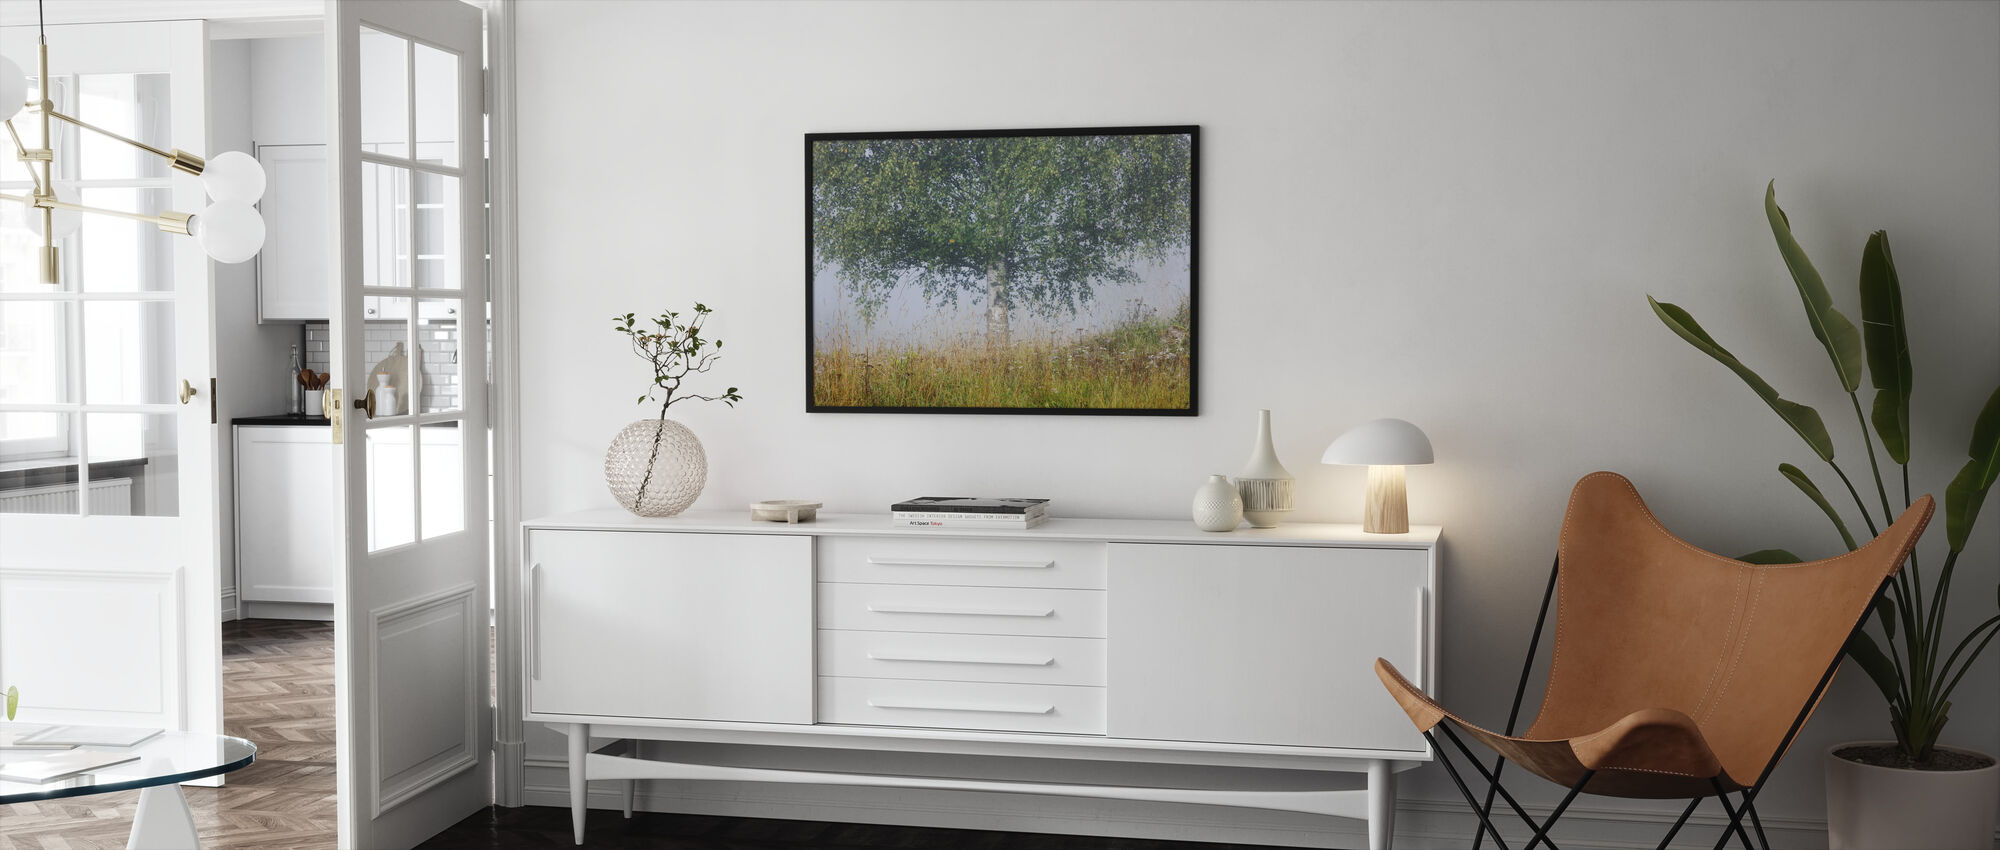 Peaceful Place - Framed print - Living Room